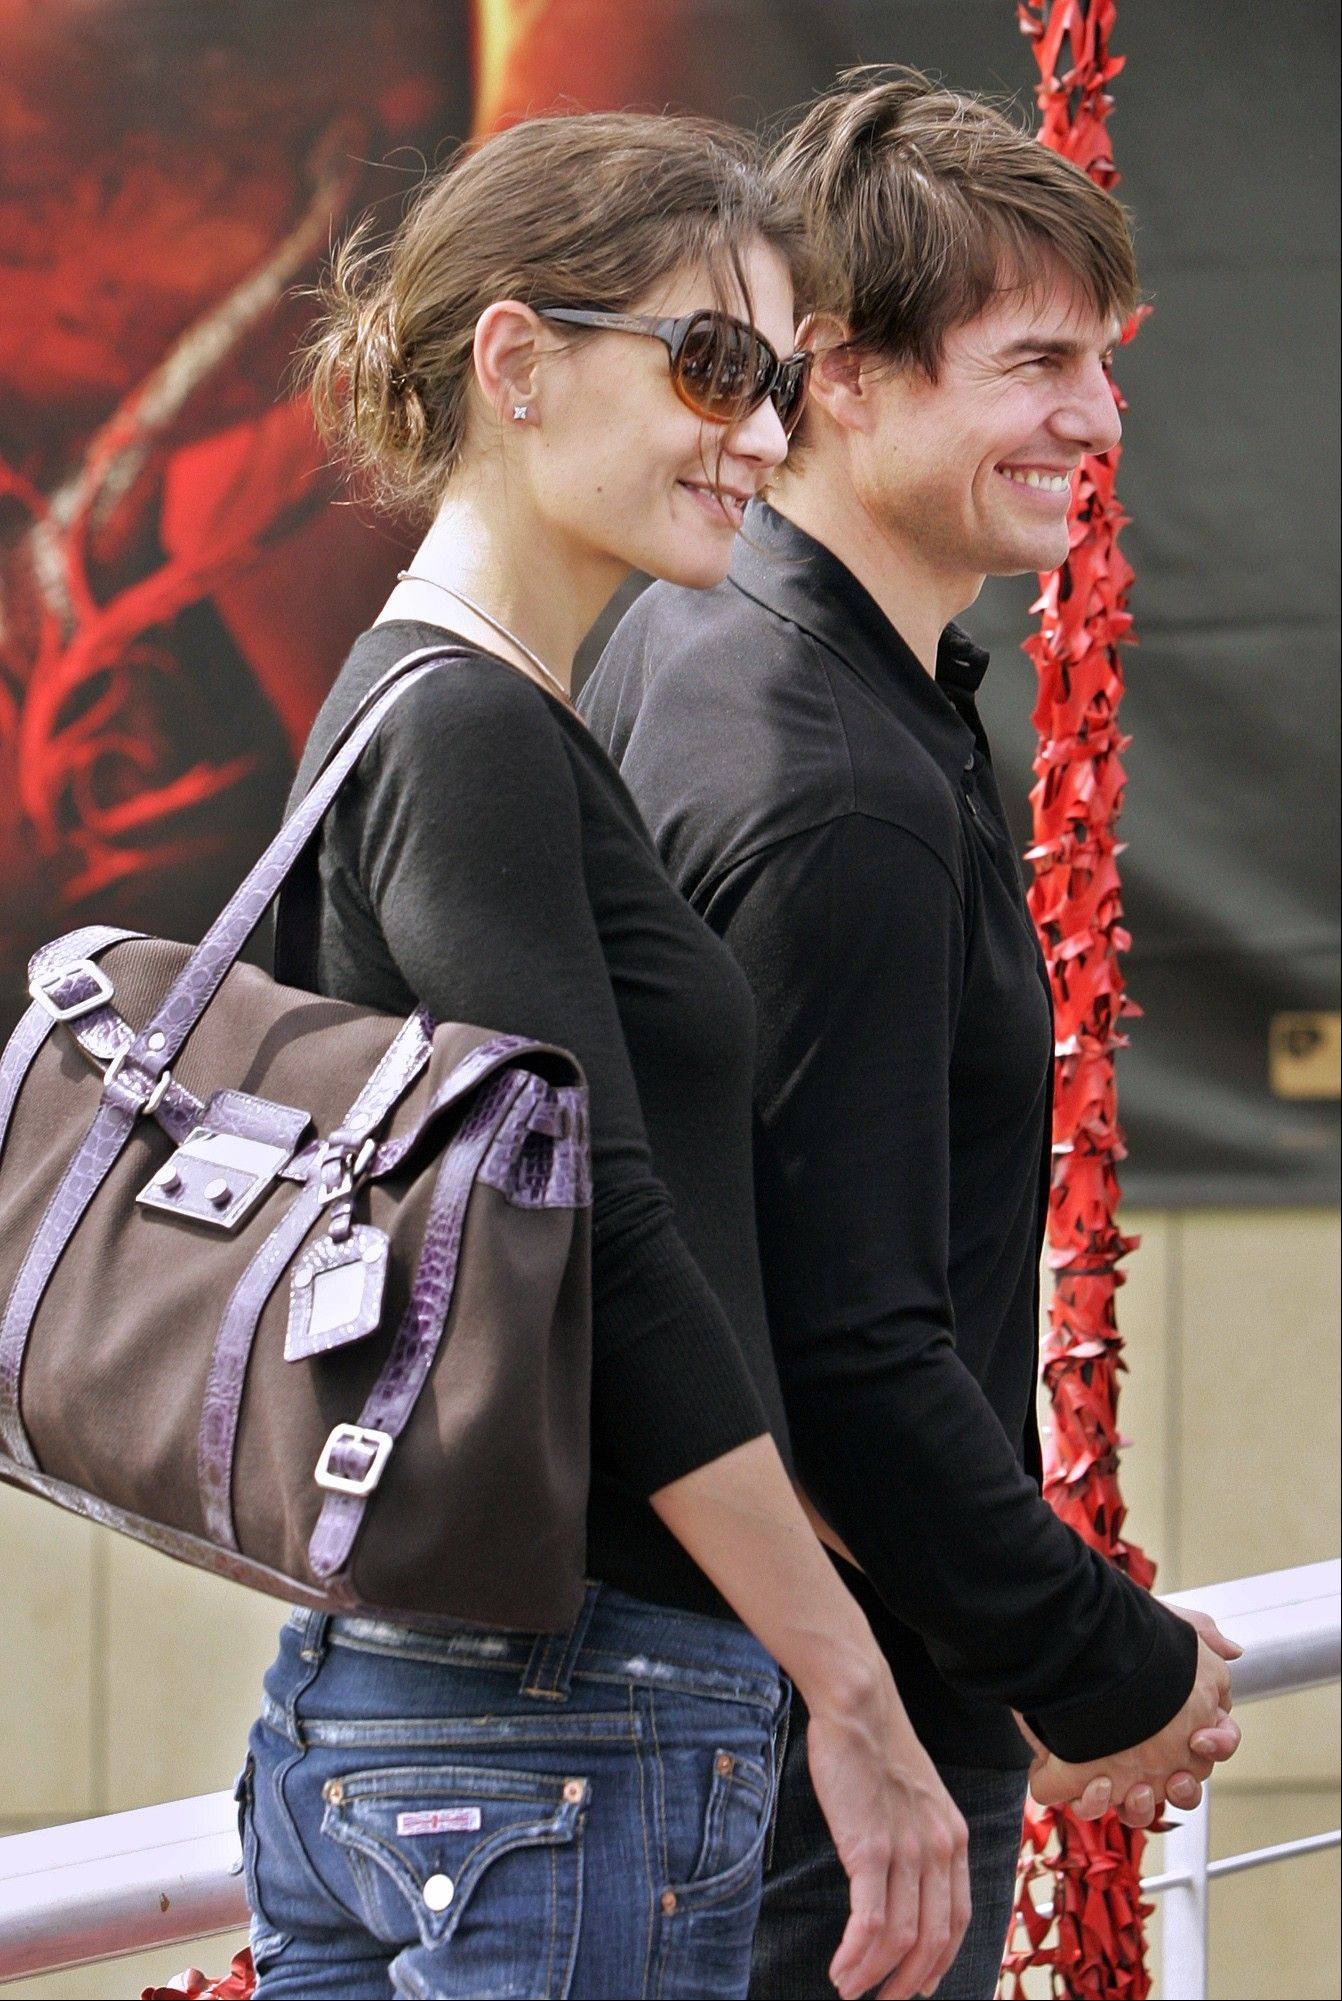 In this June 21, 2005 file photo Katie Holmes sports a Hermes handbag as she and Tom Cruise pose for photographers in Madrid shortly after announcing their engagement. The status handbag market is driven by celebrity trendsetters such as Holmes and Victoria Beckham and now some big auction houses are getting in on the act. They say it's a new and growing category that's attracting sellers and buyers from around the world.